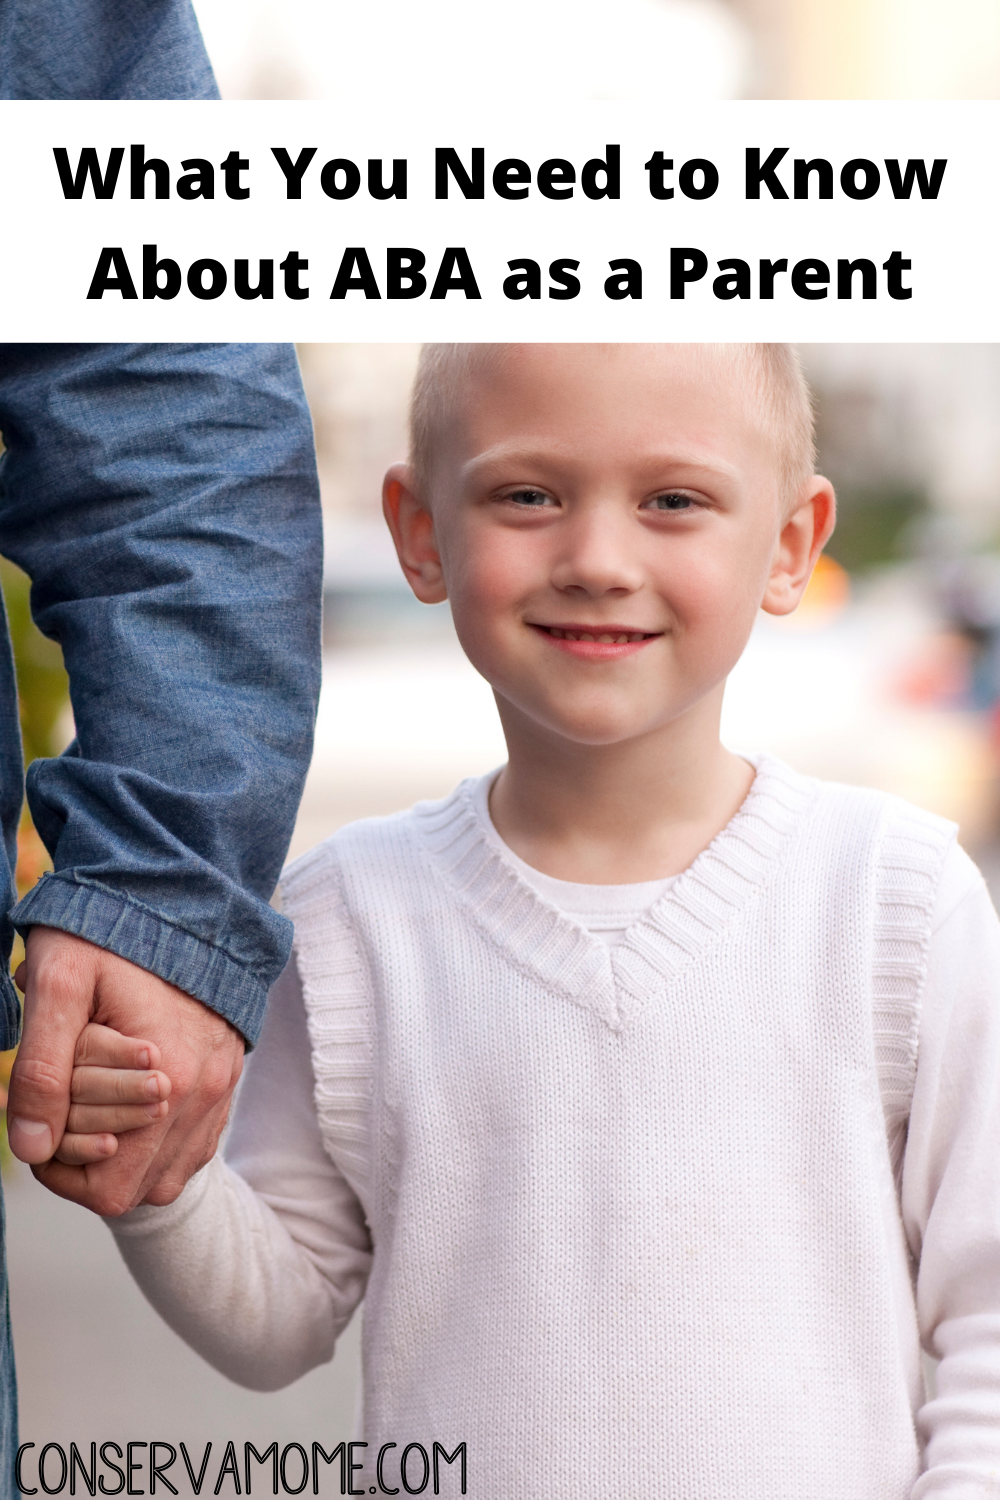 What You Need to Know About ABA as a Parent